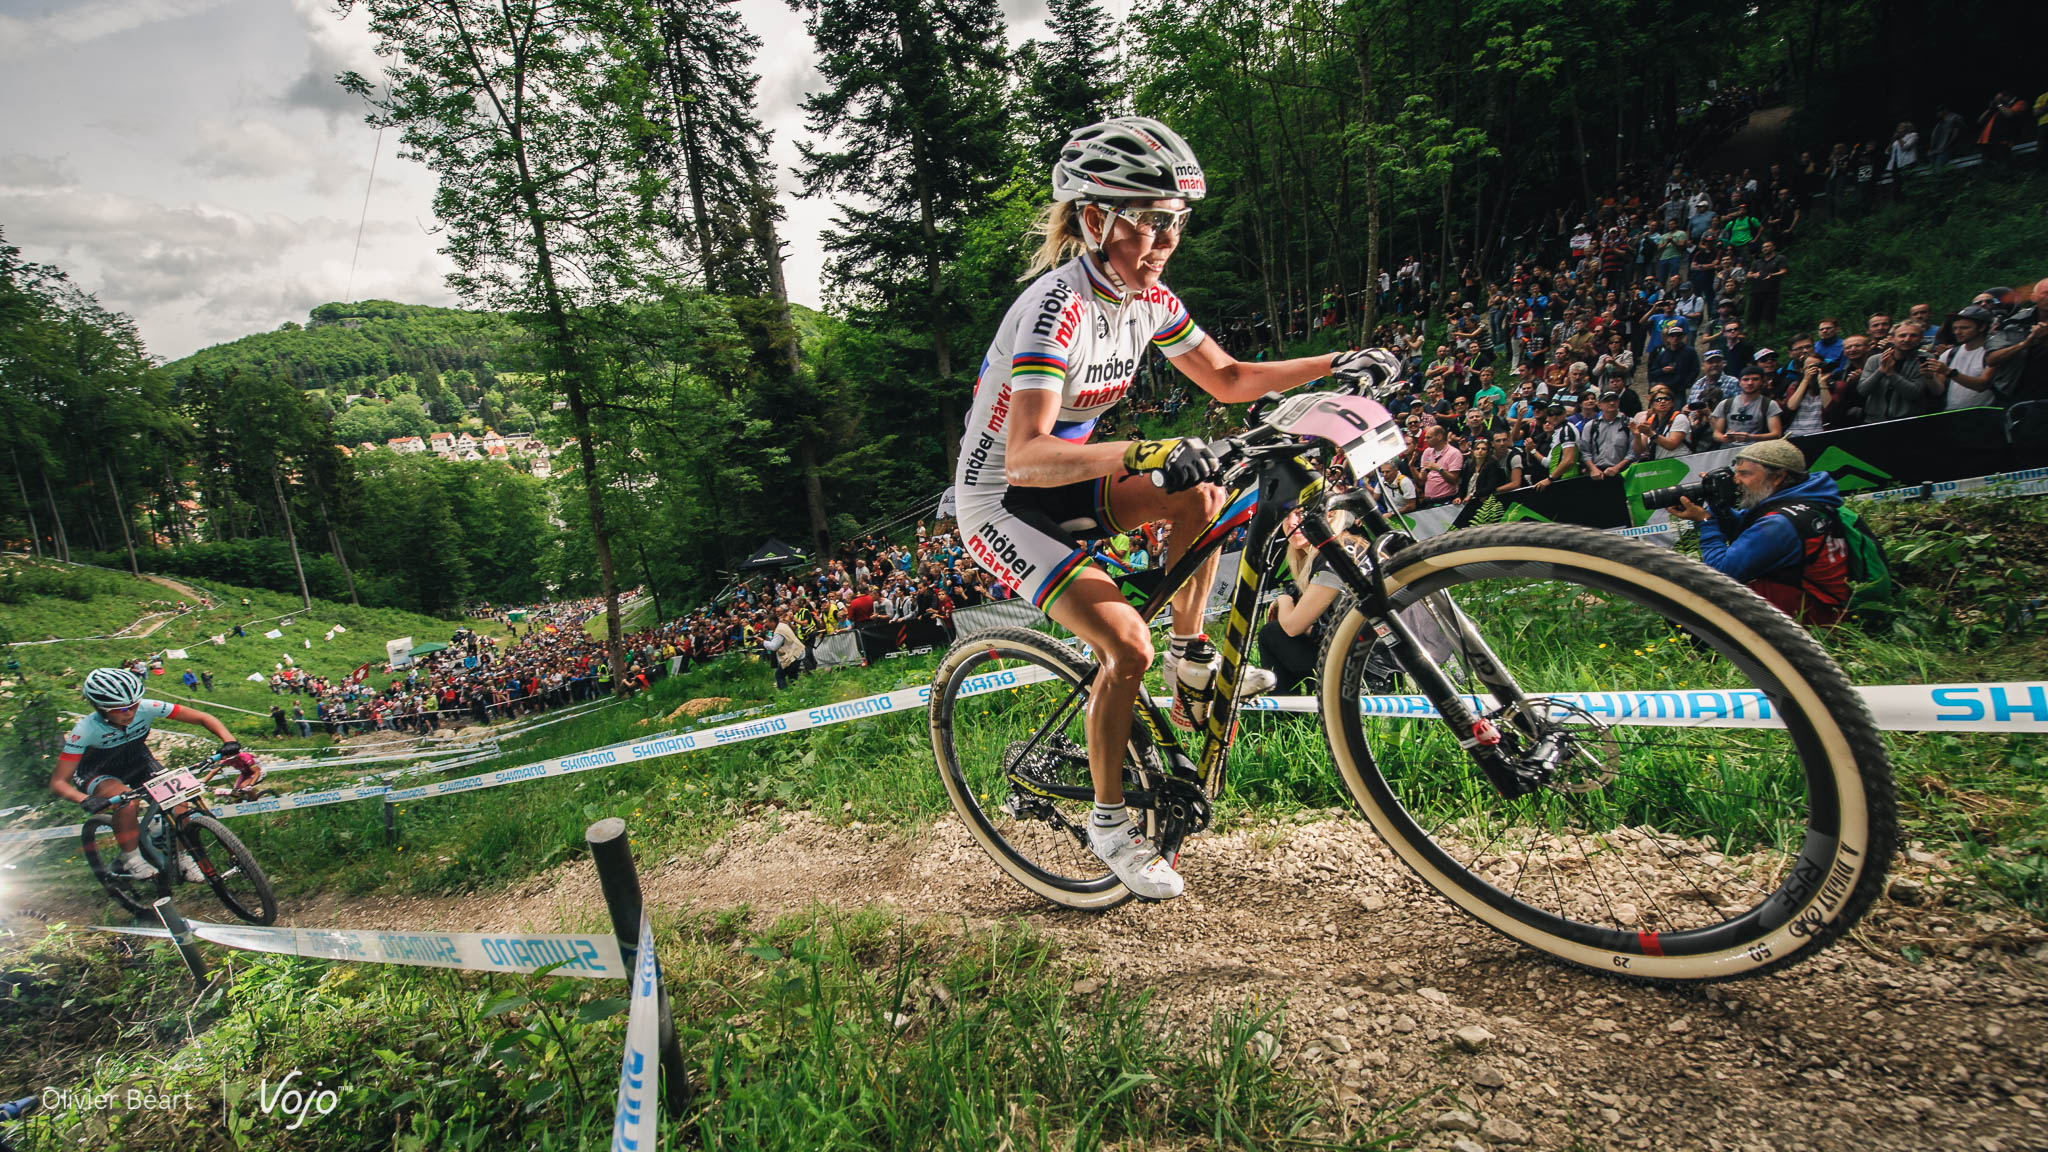 World_Cup_Albstadt_2015_Dames_Kalentieva_Grobert_Copyright_OBeart_VojoMag-38